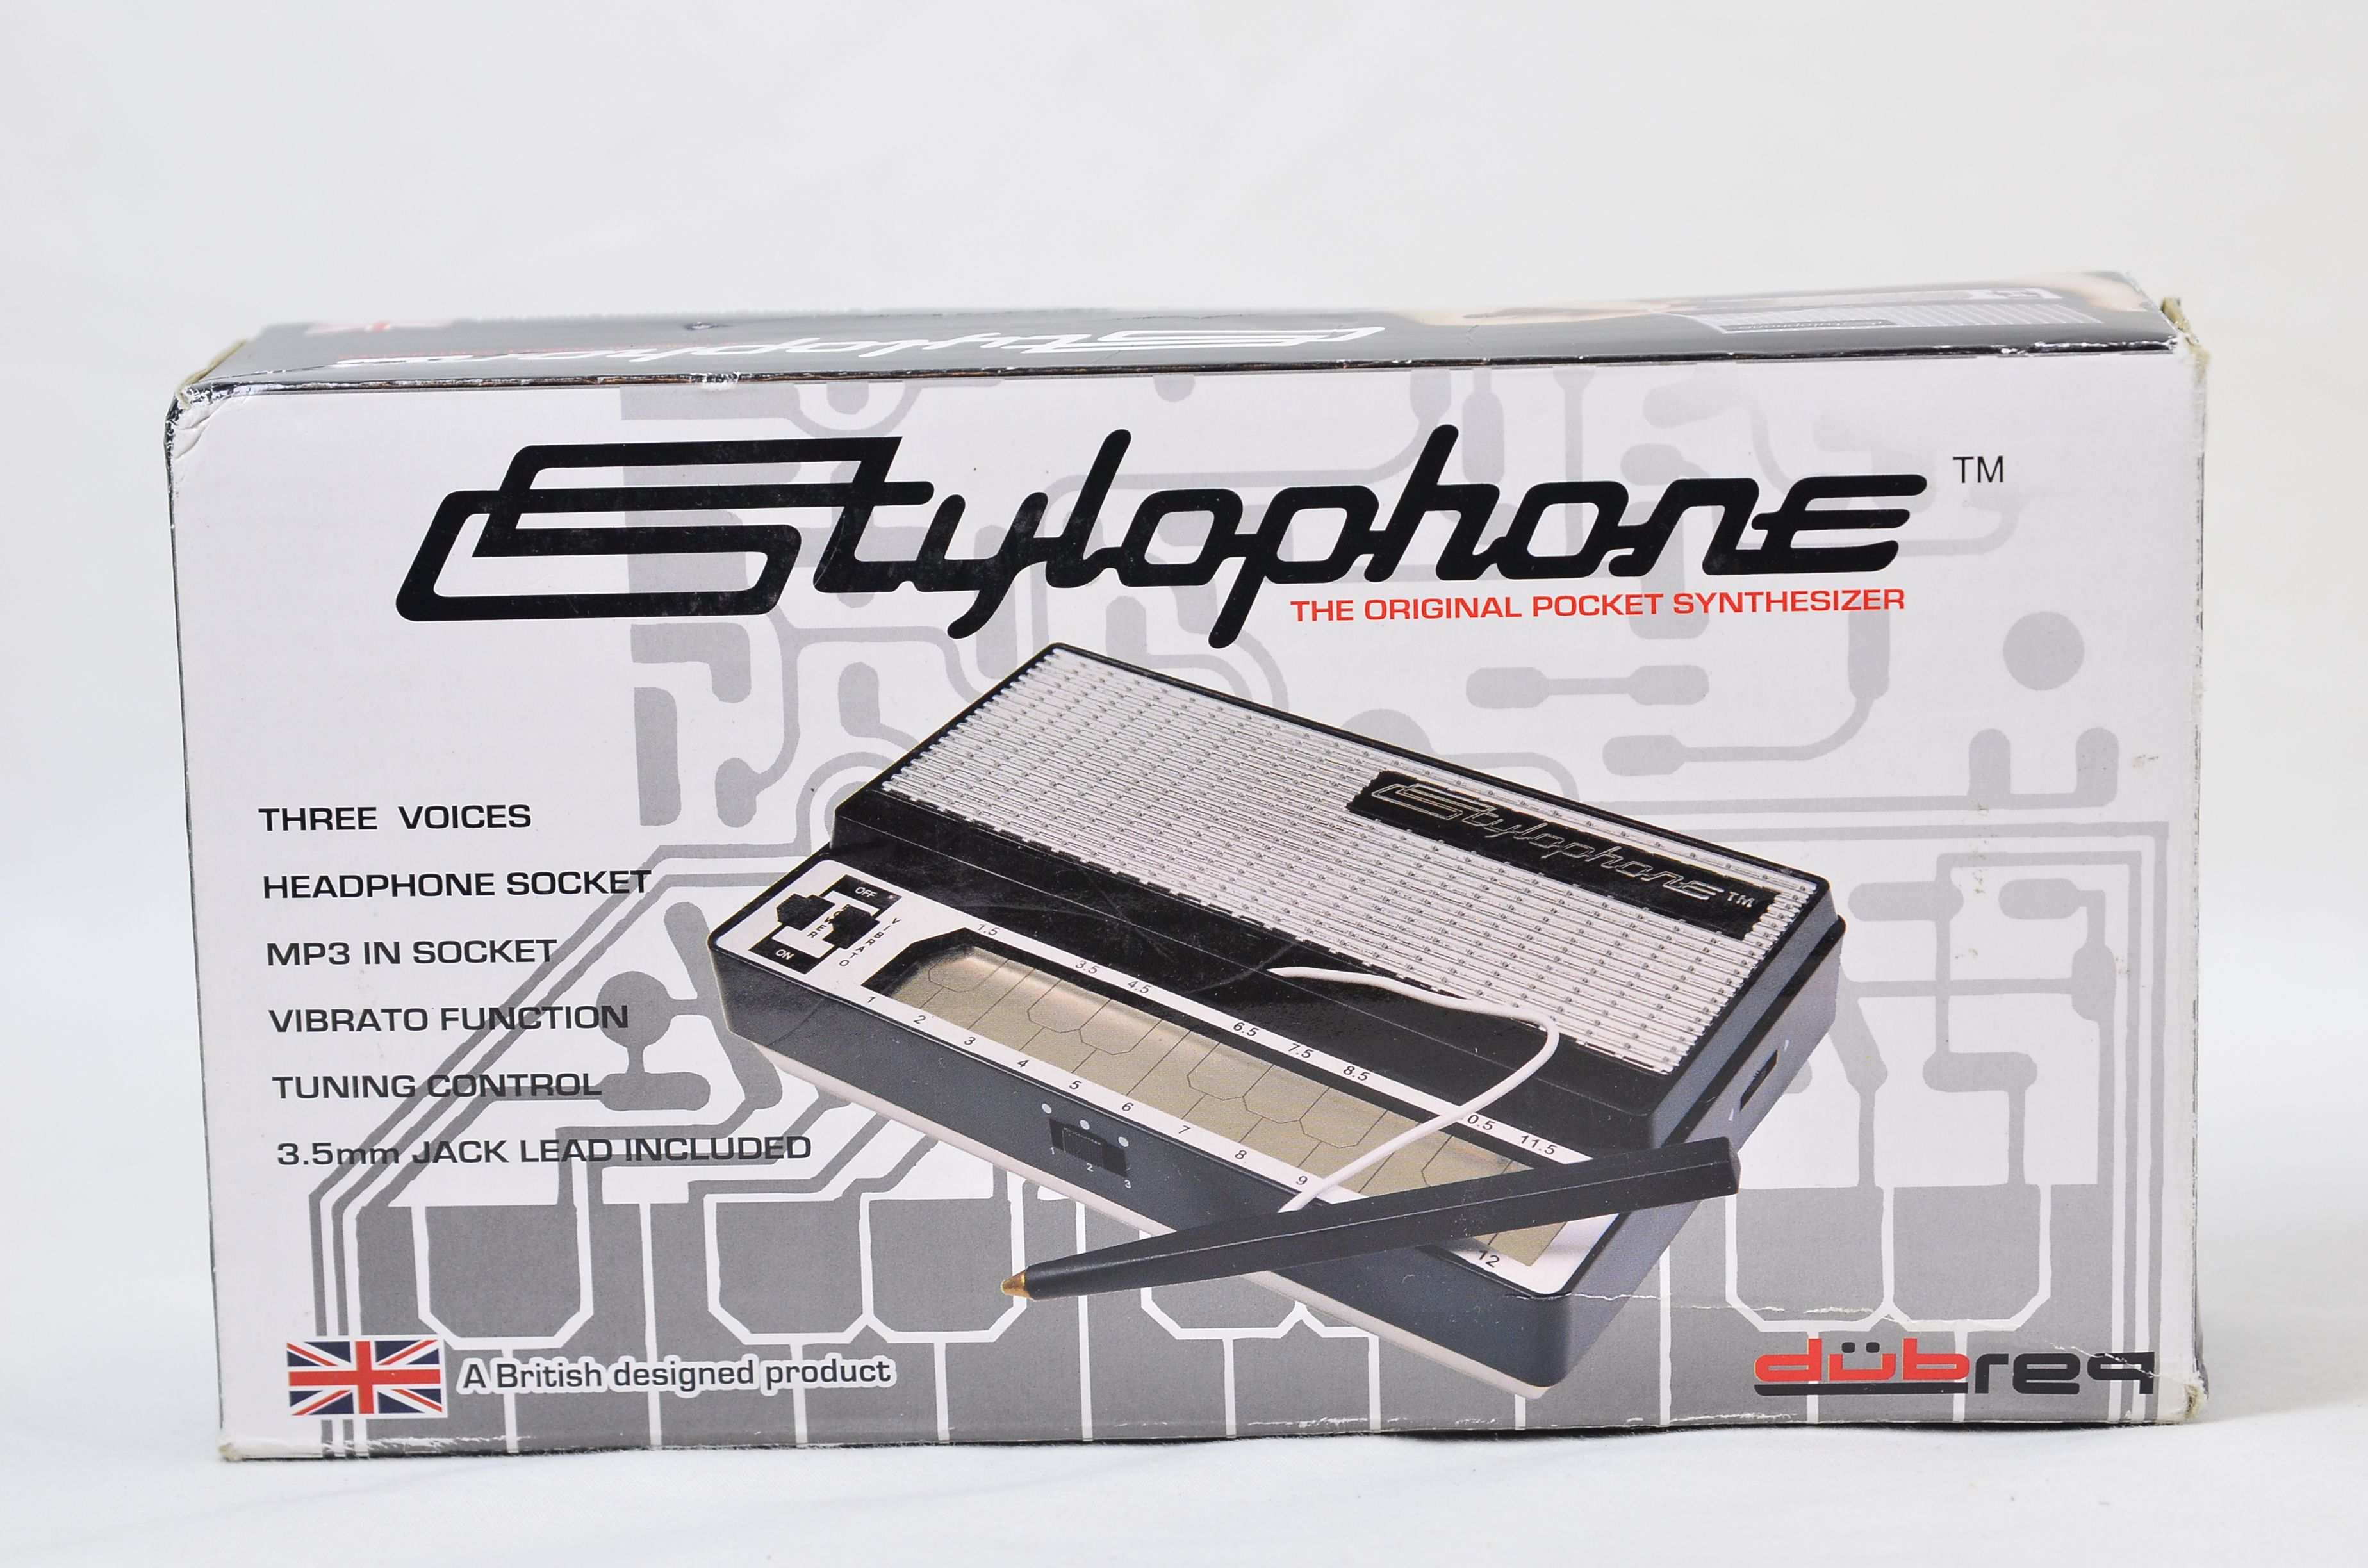 Dubreq Stylophone - The Original Pocket Synthesizer S-1 Pocket Electronic Organ 2